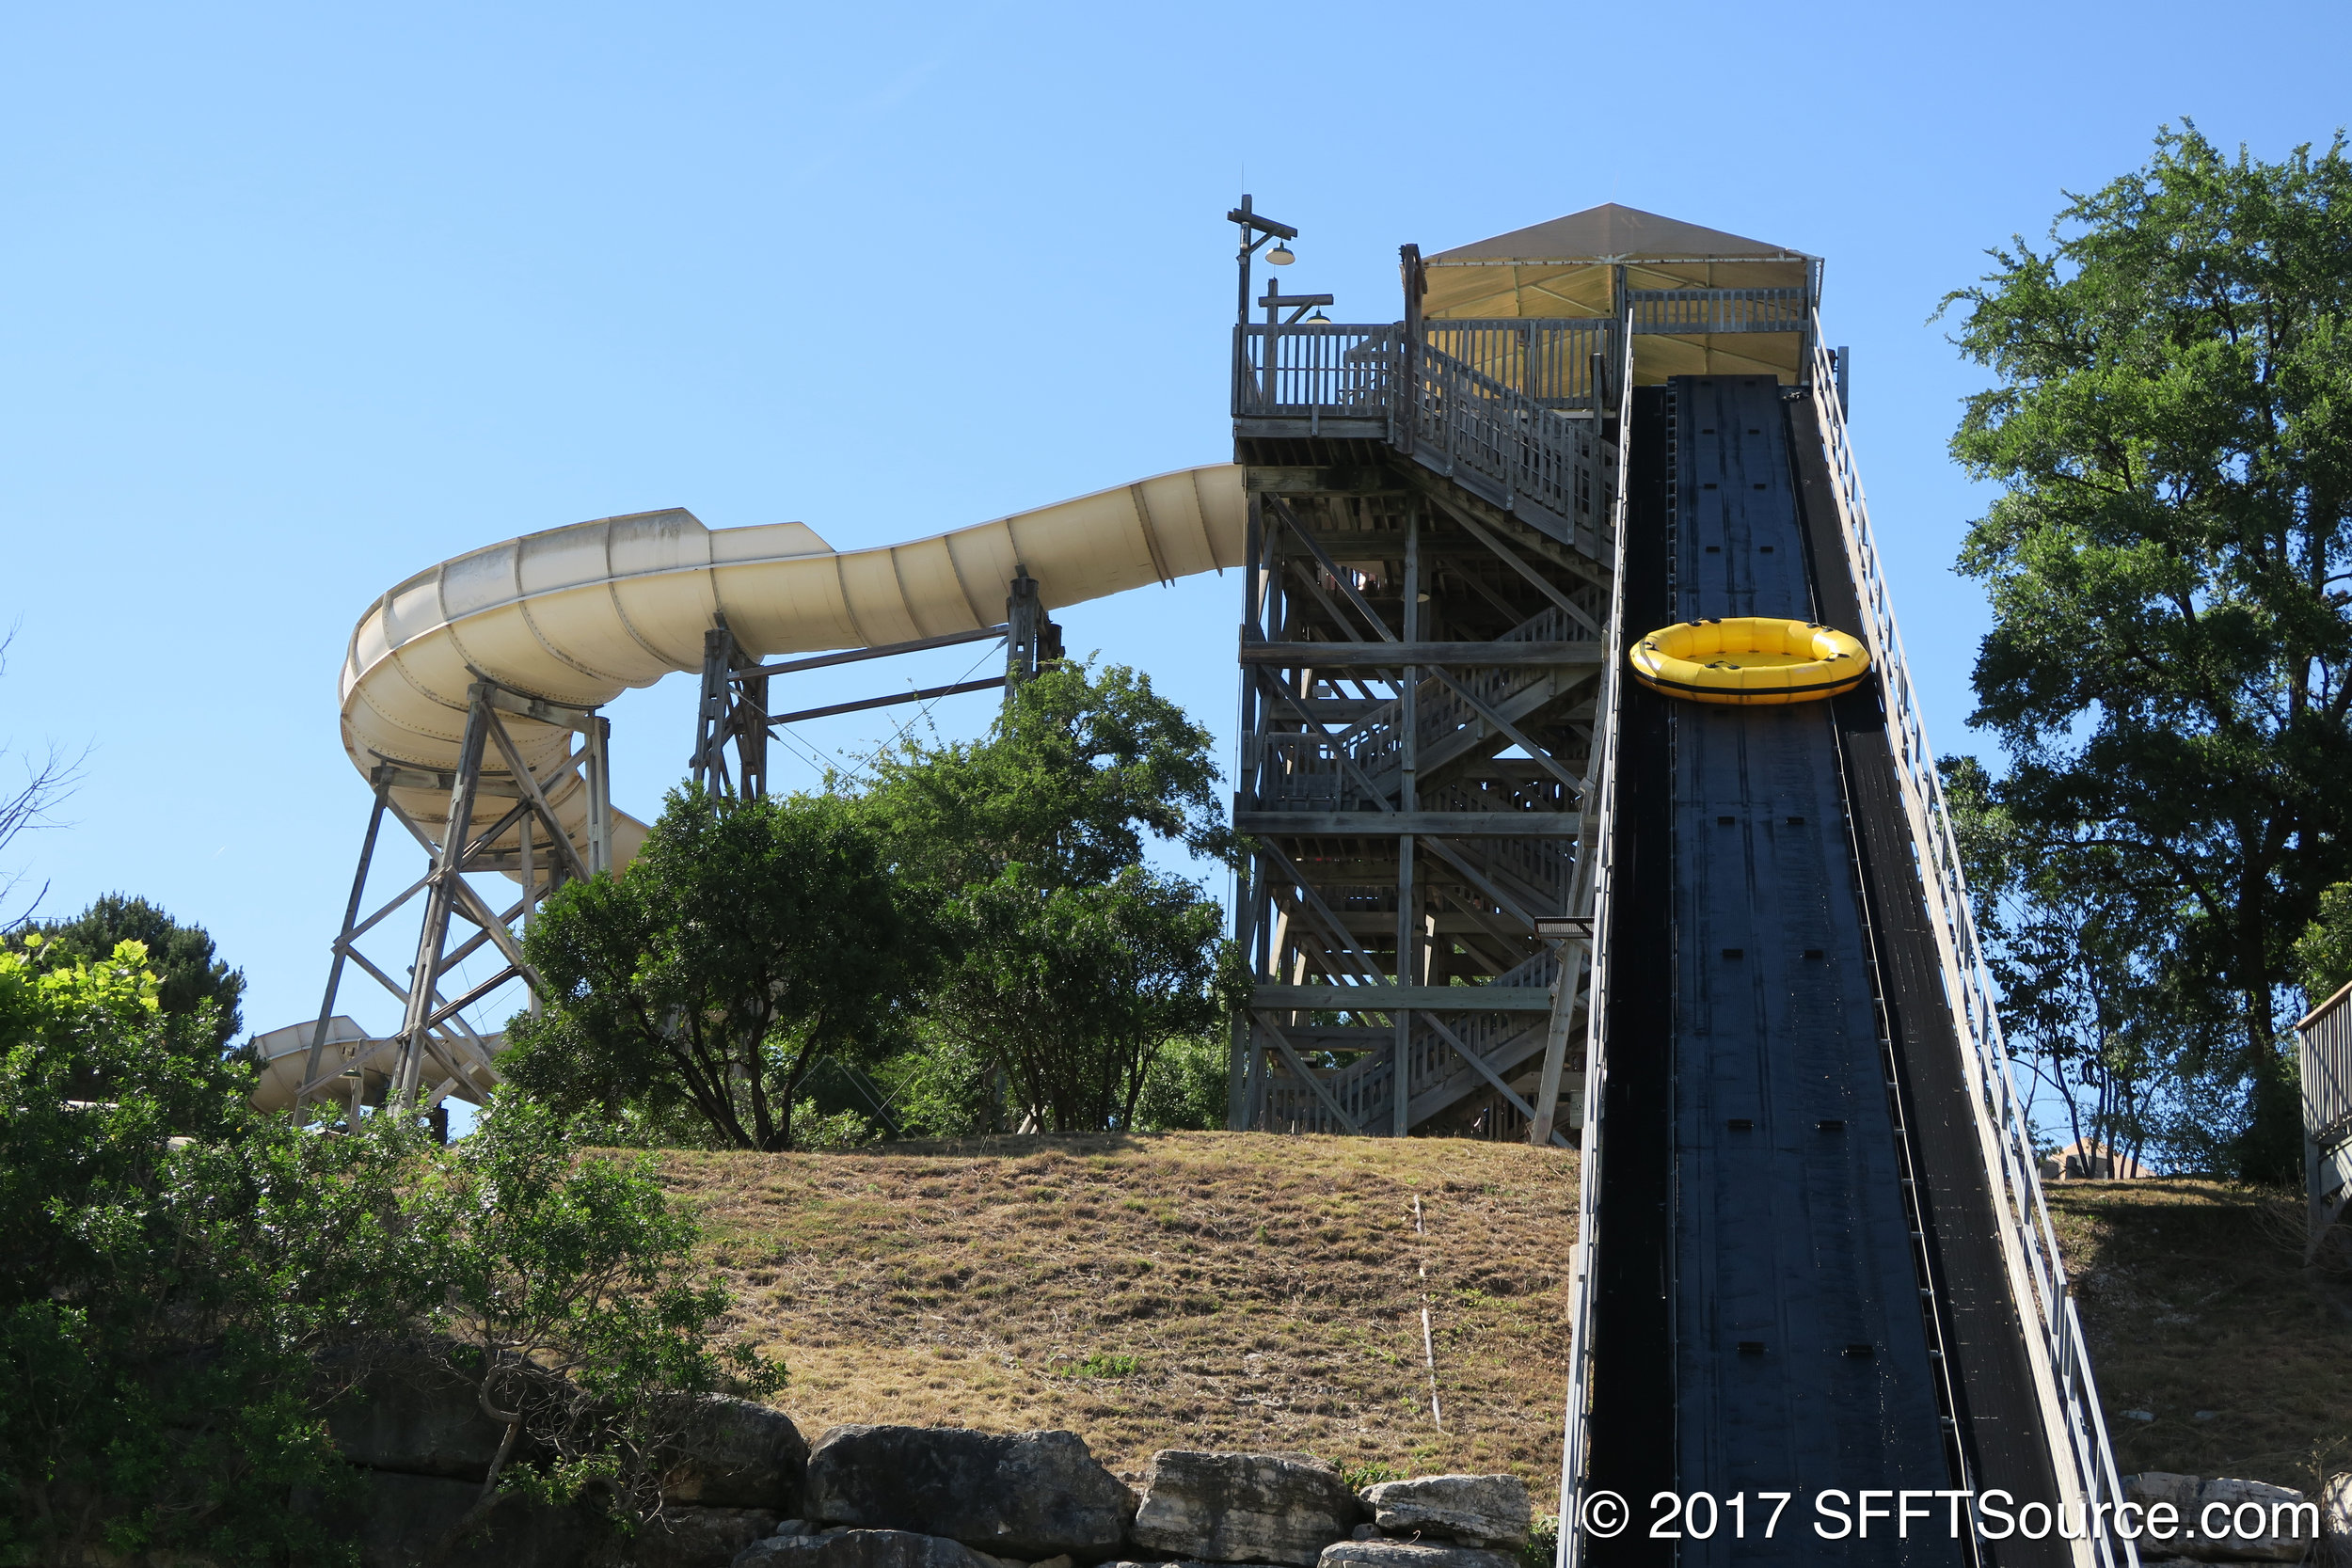 Rafts are transported to the top of the slide via conveyor belt.